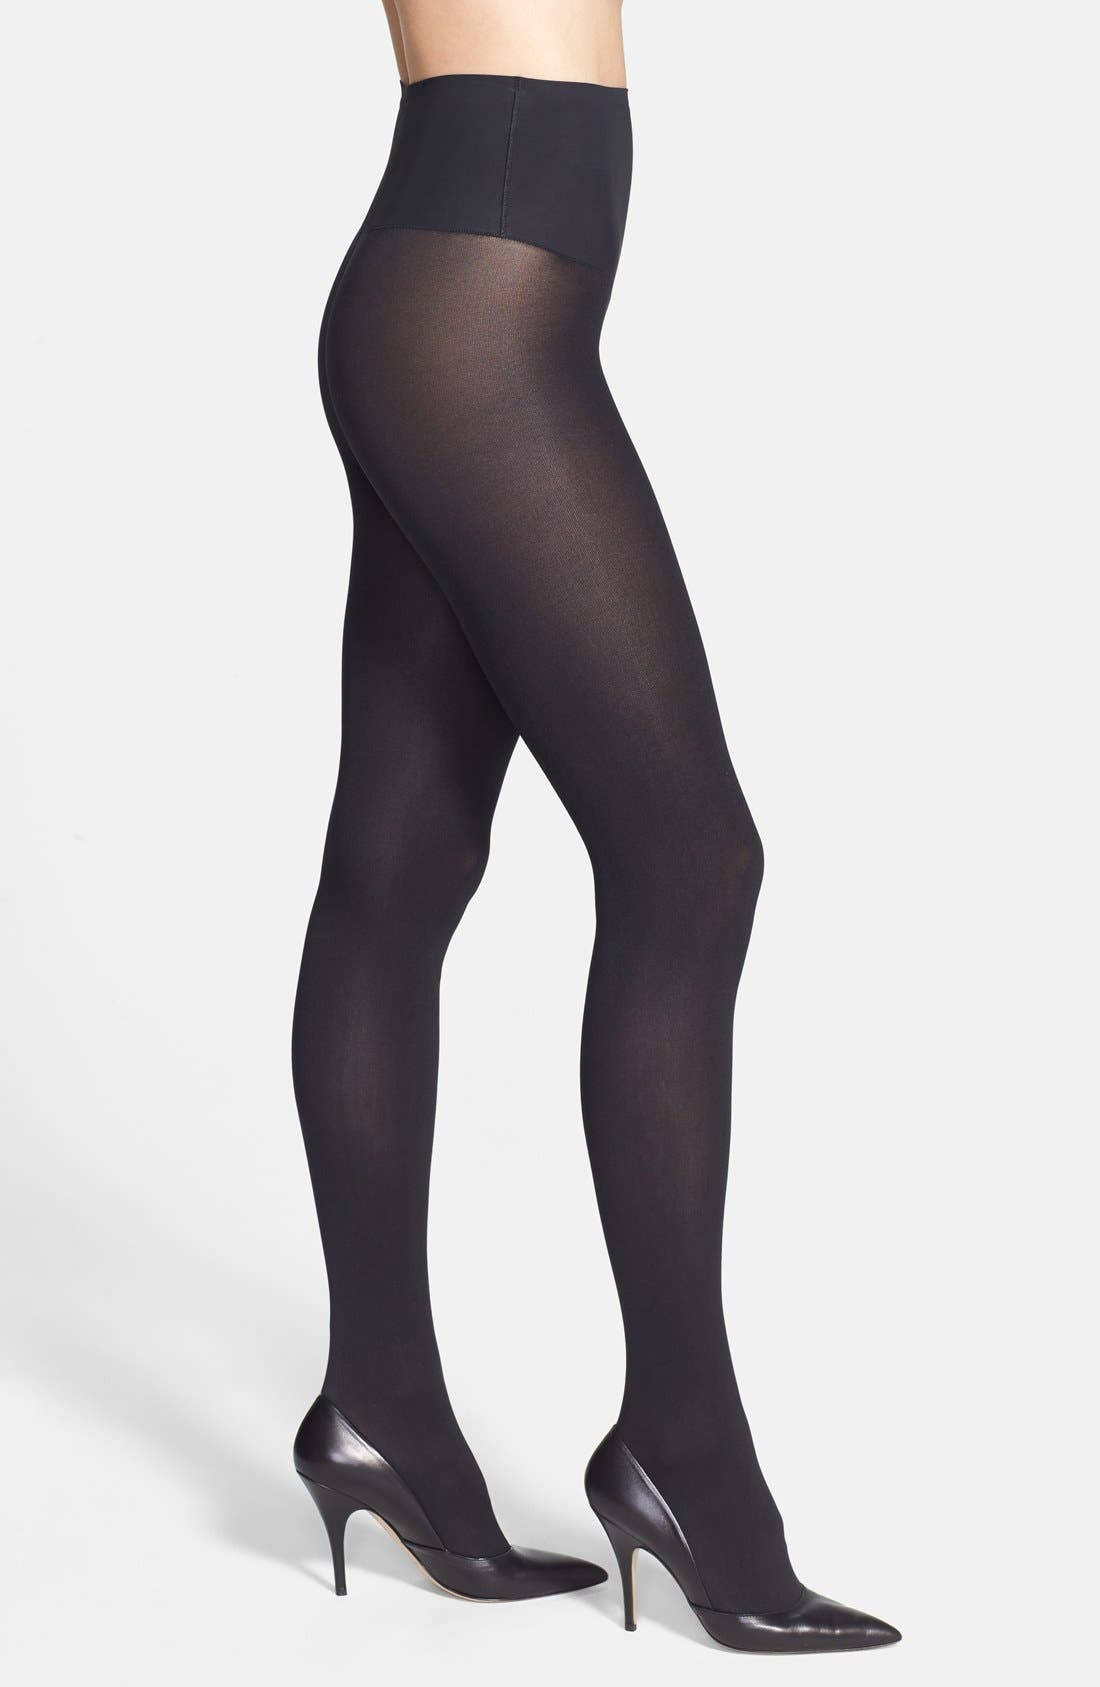 Alternate Image 1 Selected - Yummie by Heather Thomson 'Deidra' Mid Waist Control Top Tights (Online Only)